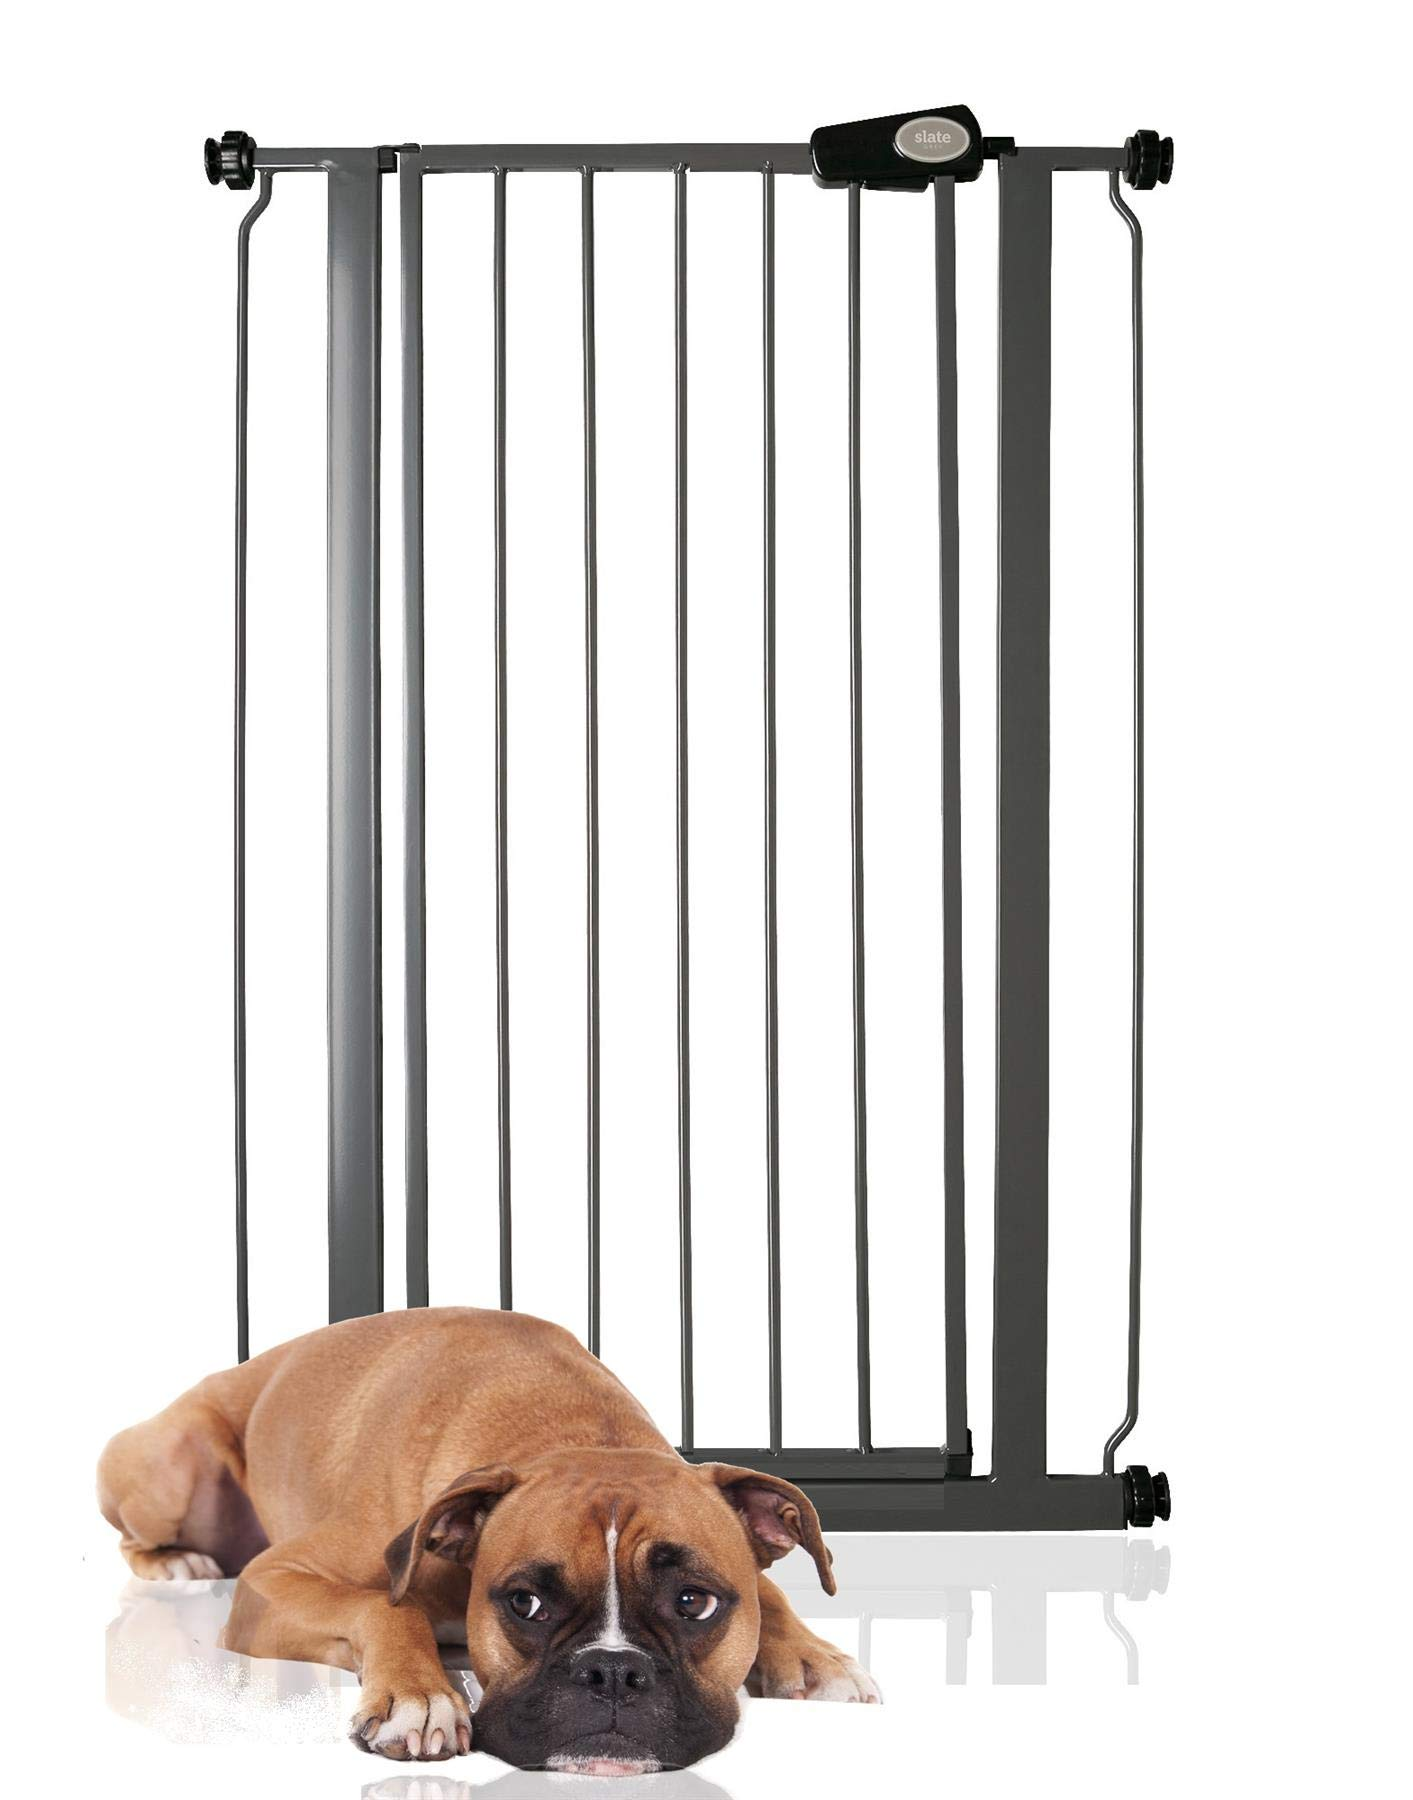 Bettacare Child and Pet Gate Range 75cm - 147.5cm (68.5cm - 75cm, Slate Grey) Bettacare Pressure Fitted White Metal Gate Double Locking Mechanism 1